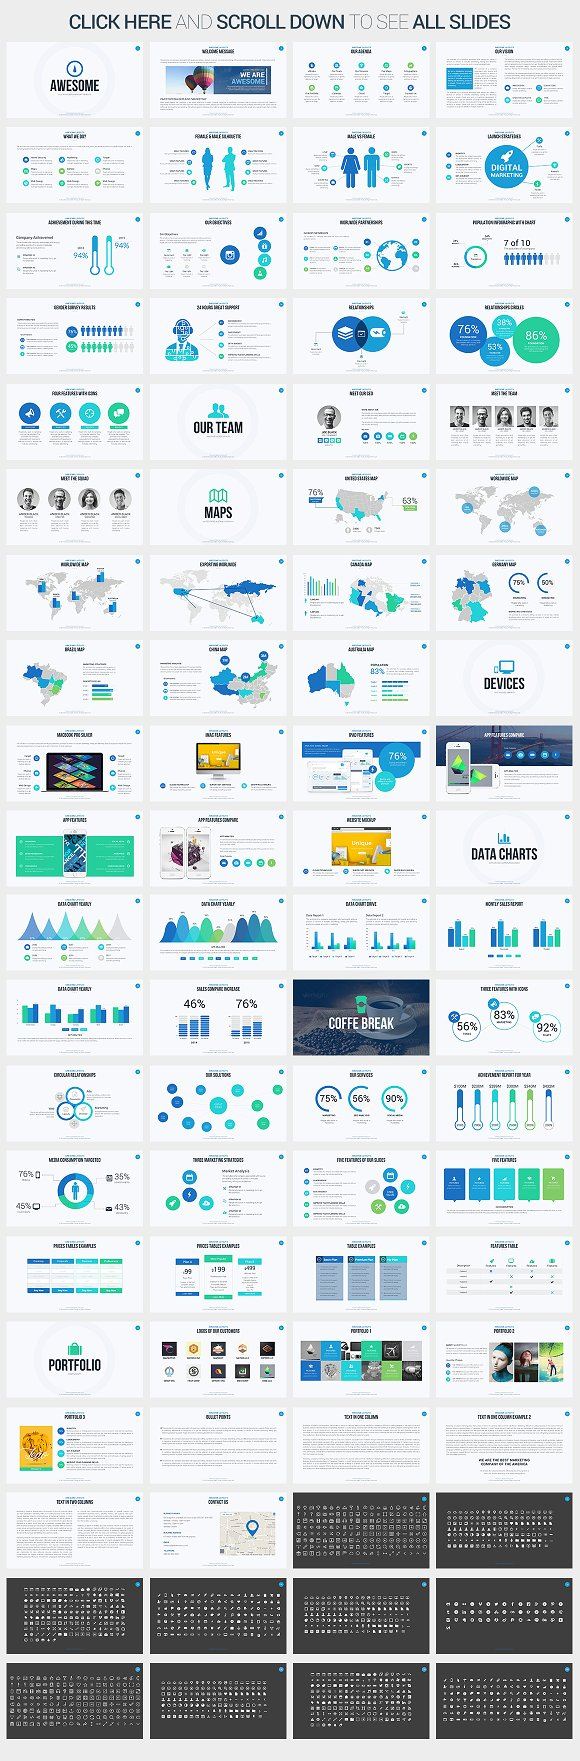 Awesome powerpoint template presentation templates creative market alramifo Image collections